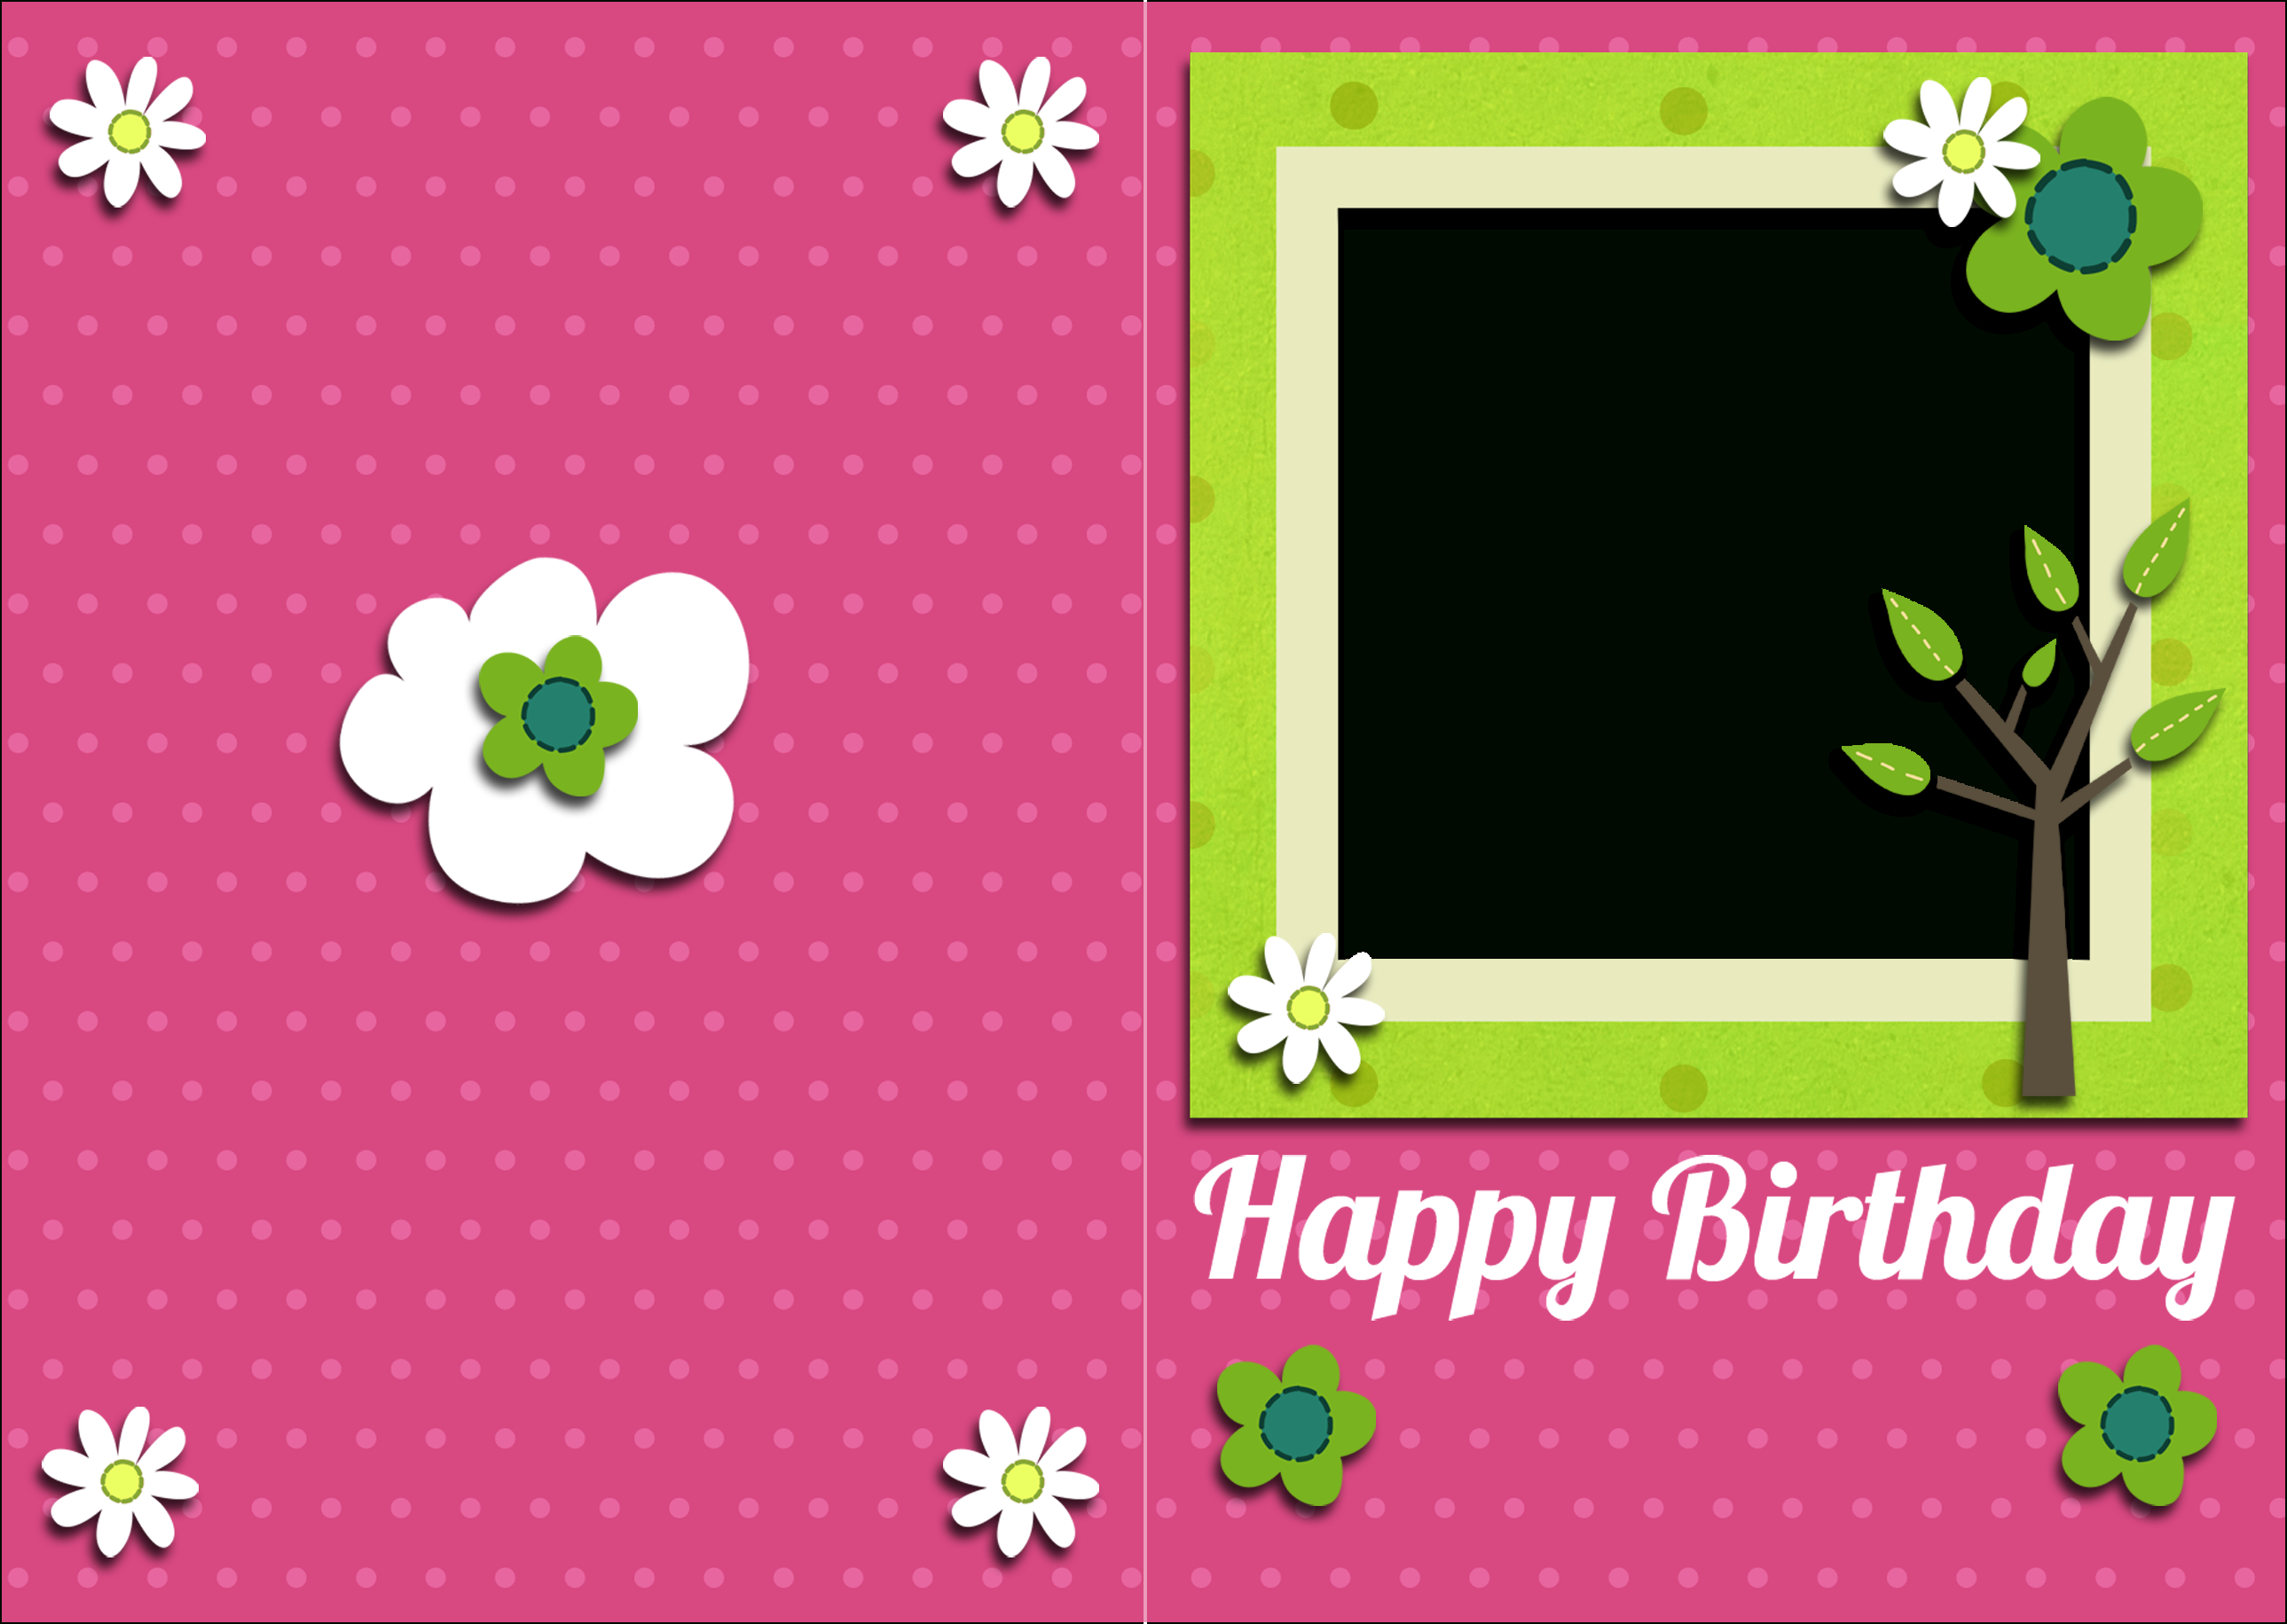 Free Pictures To Print Free  Free Printable Birthday Card And Gift Pertaining To Template For Cards To Print Free